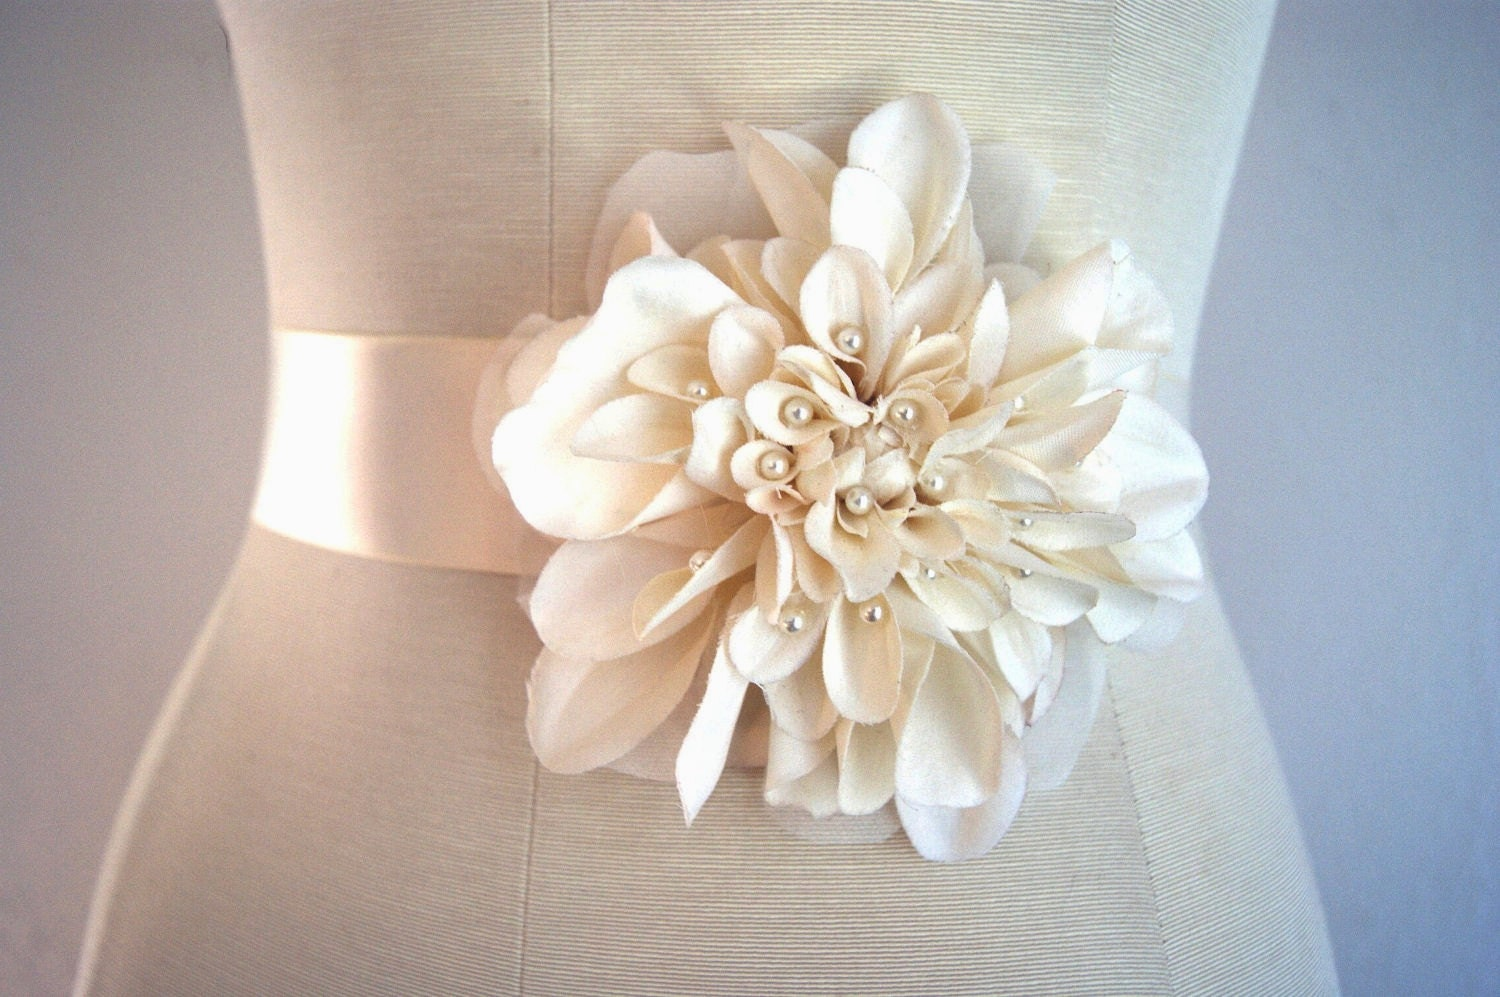 Flower Bridal Sash SWEET DAHLIA Wedding Dress by VenustBridal